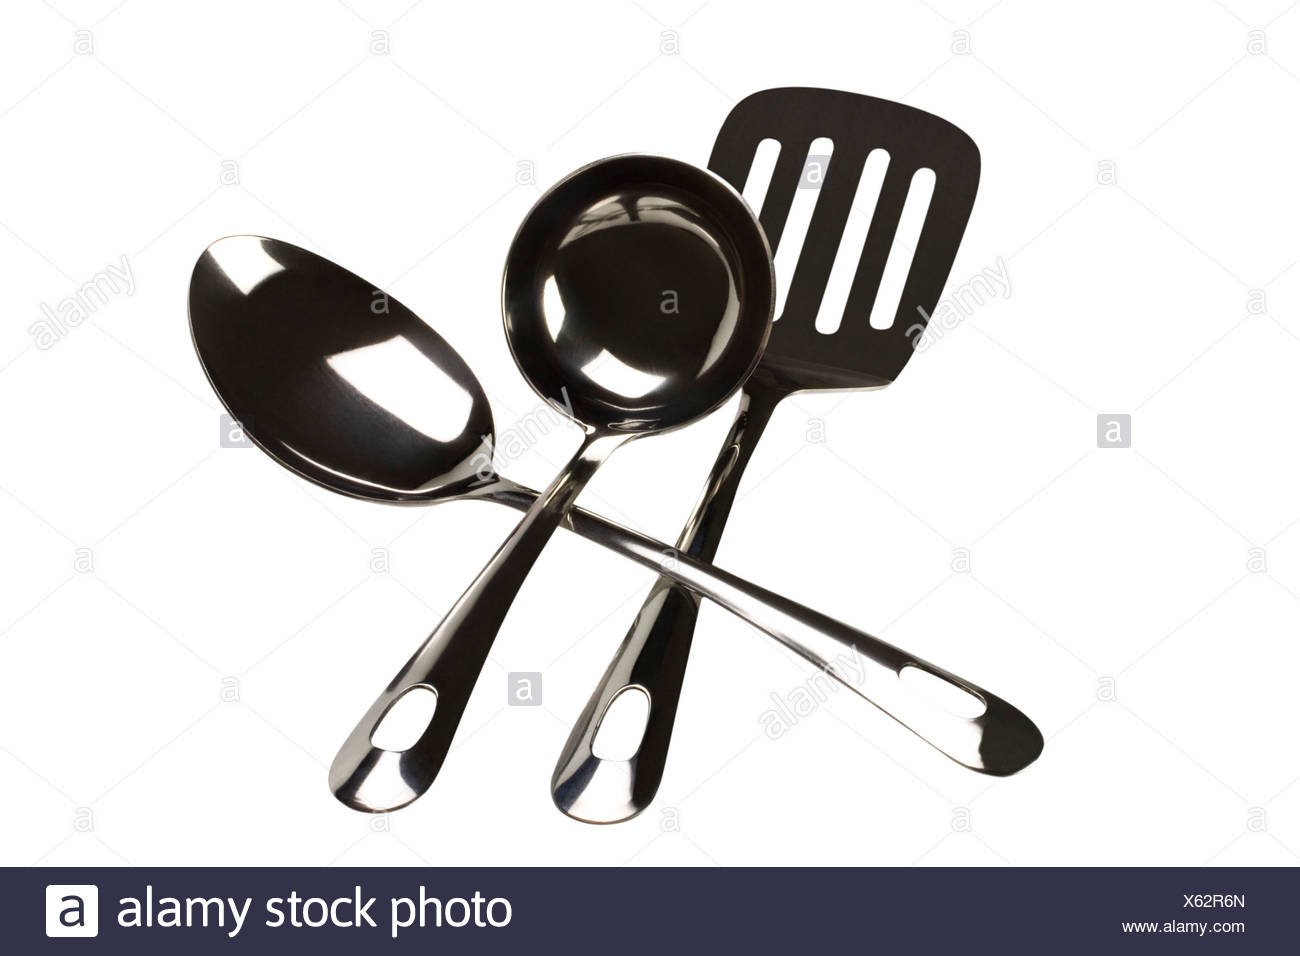 Close-up of kitchen utensils Stock Photo